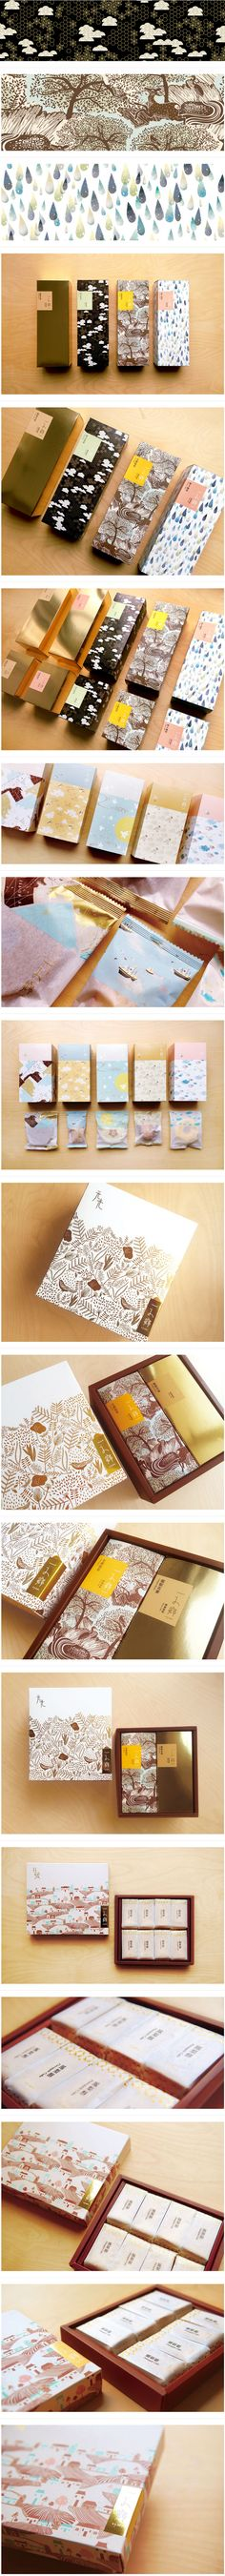 E-g-sain台湾一之乡品牌设计 非常. Very pretty collection of packaging PD Japanese Packaging, Cool Packaging, Coffee Packaging, Brand Packaging, Poster Design, Label Design, Branding Design, Package Design, Packaging Inspiration